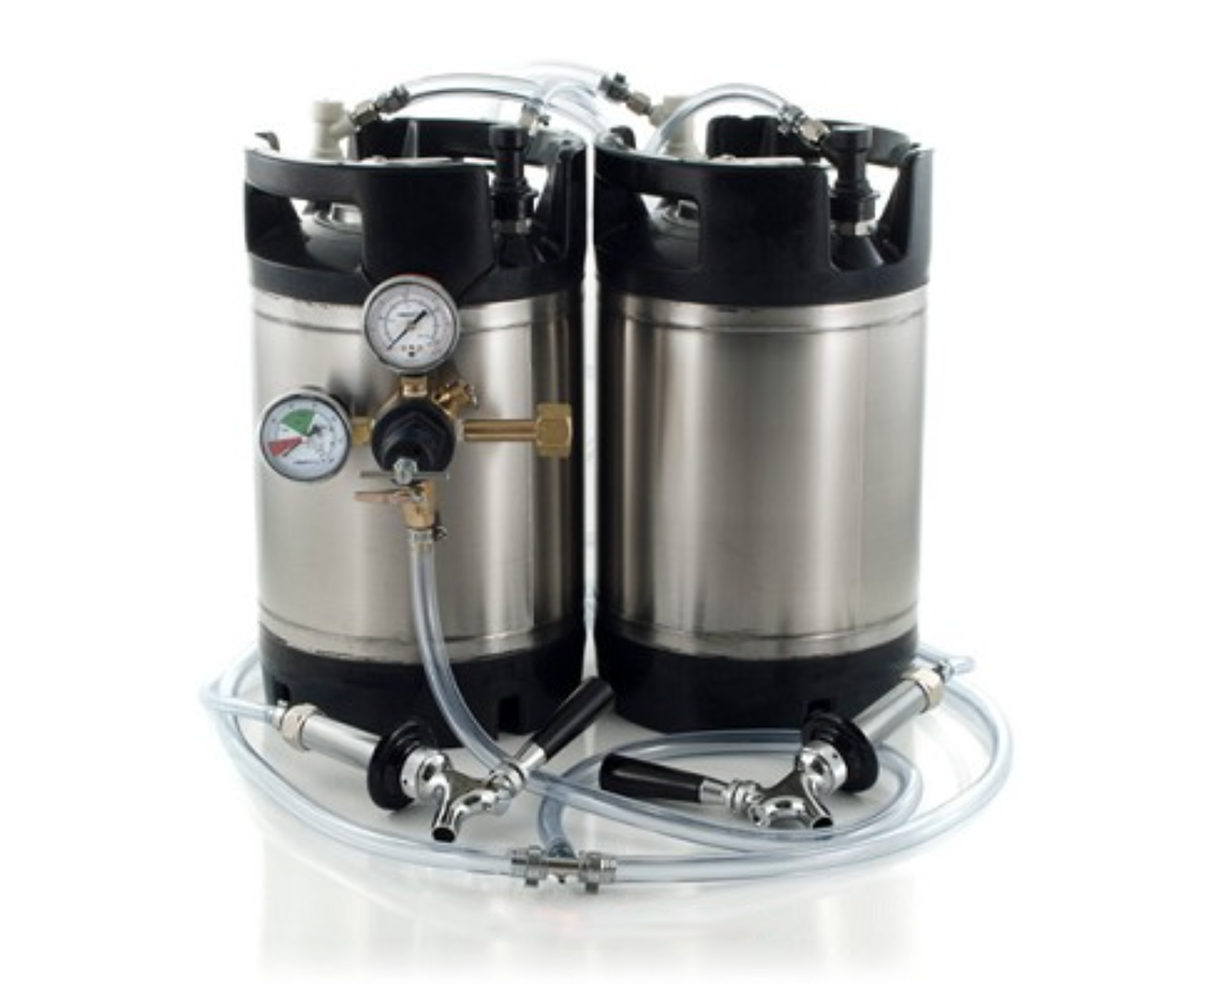 Basic Ball Lock Homebrew Kegging Kit for Two 2.5 Gallon Cornelius Kegs with Beer Shanks, and Regulator